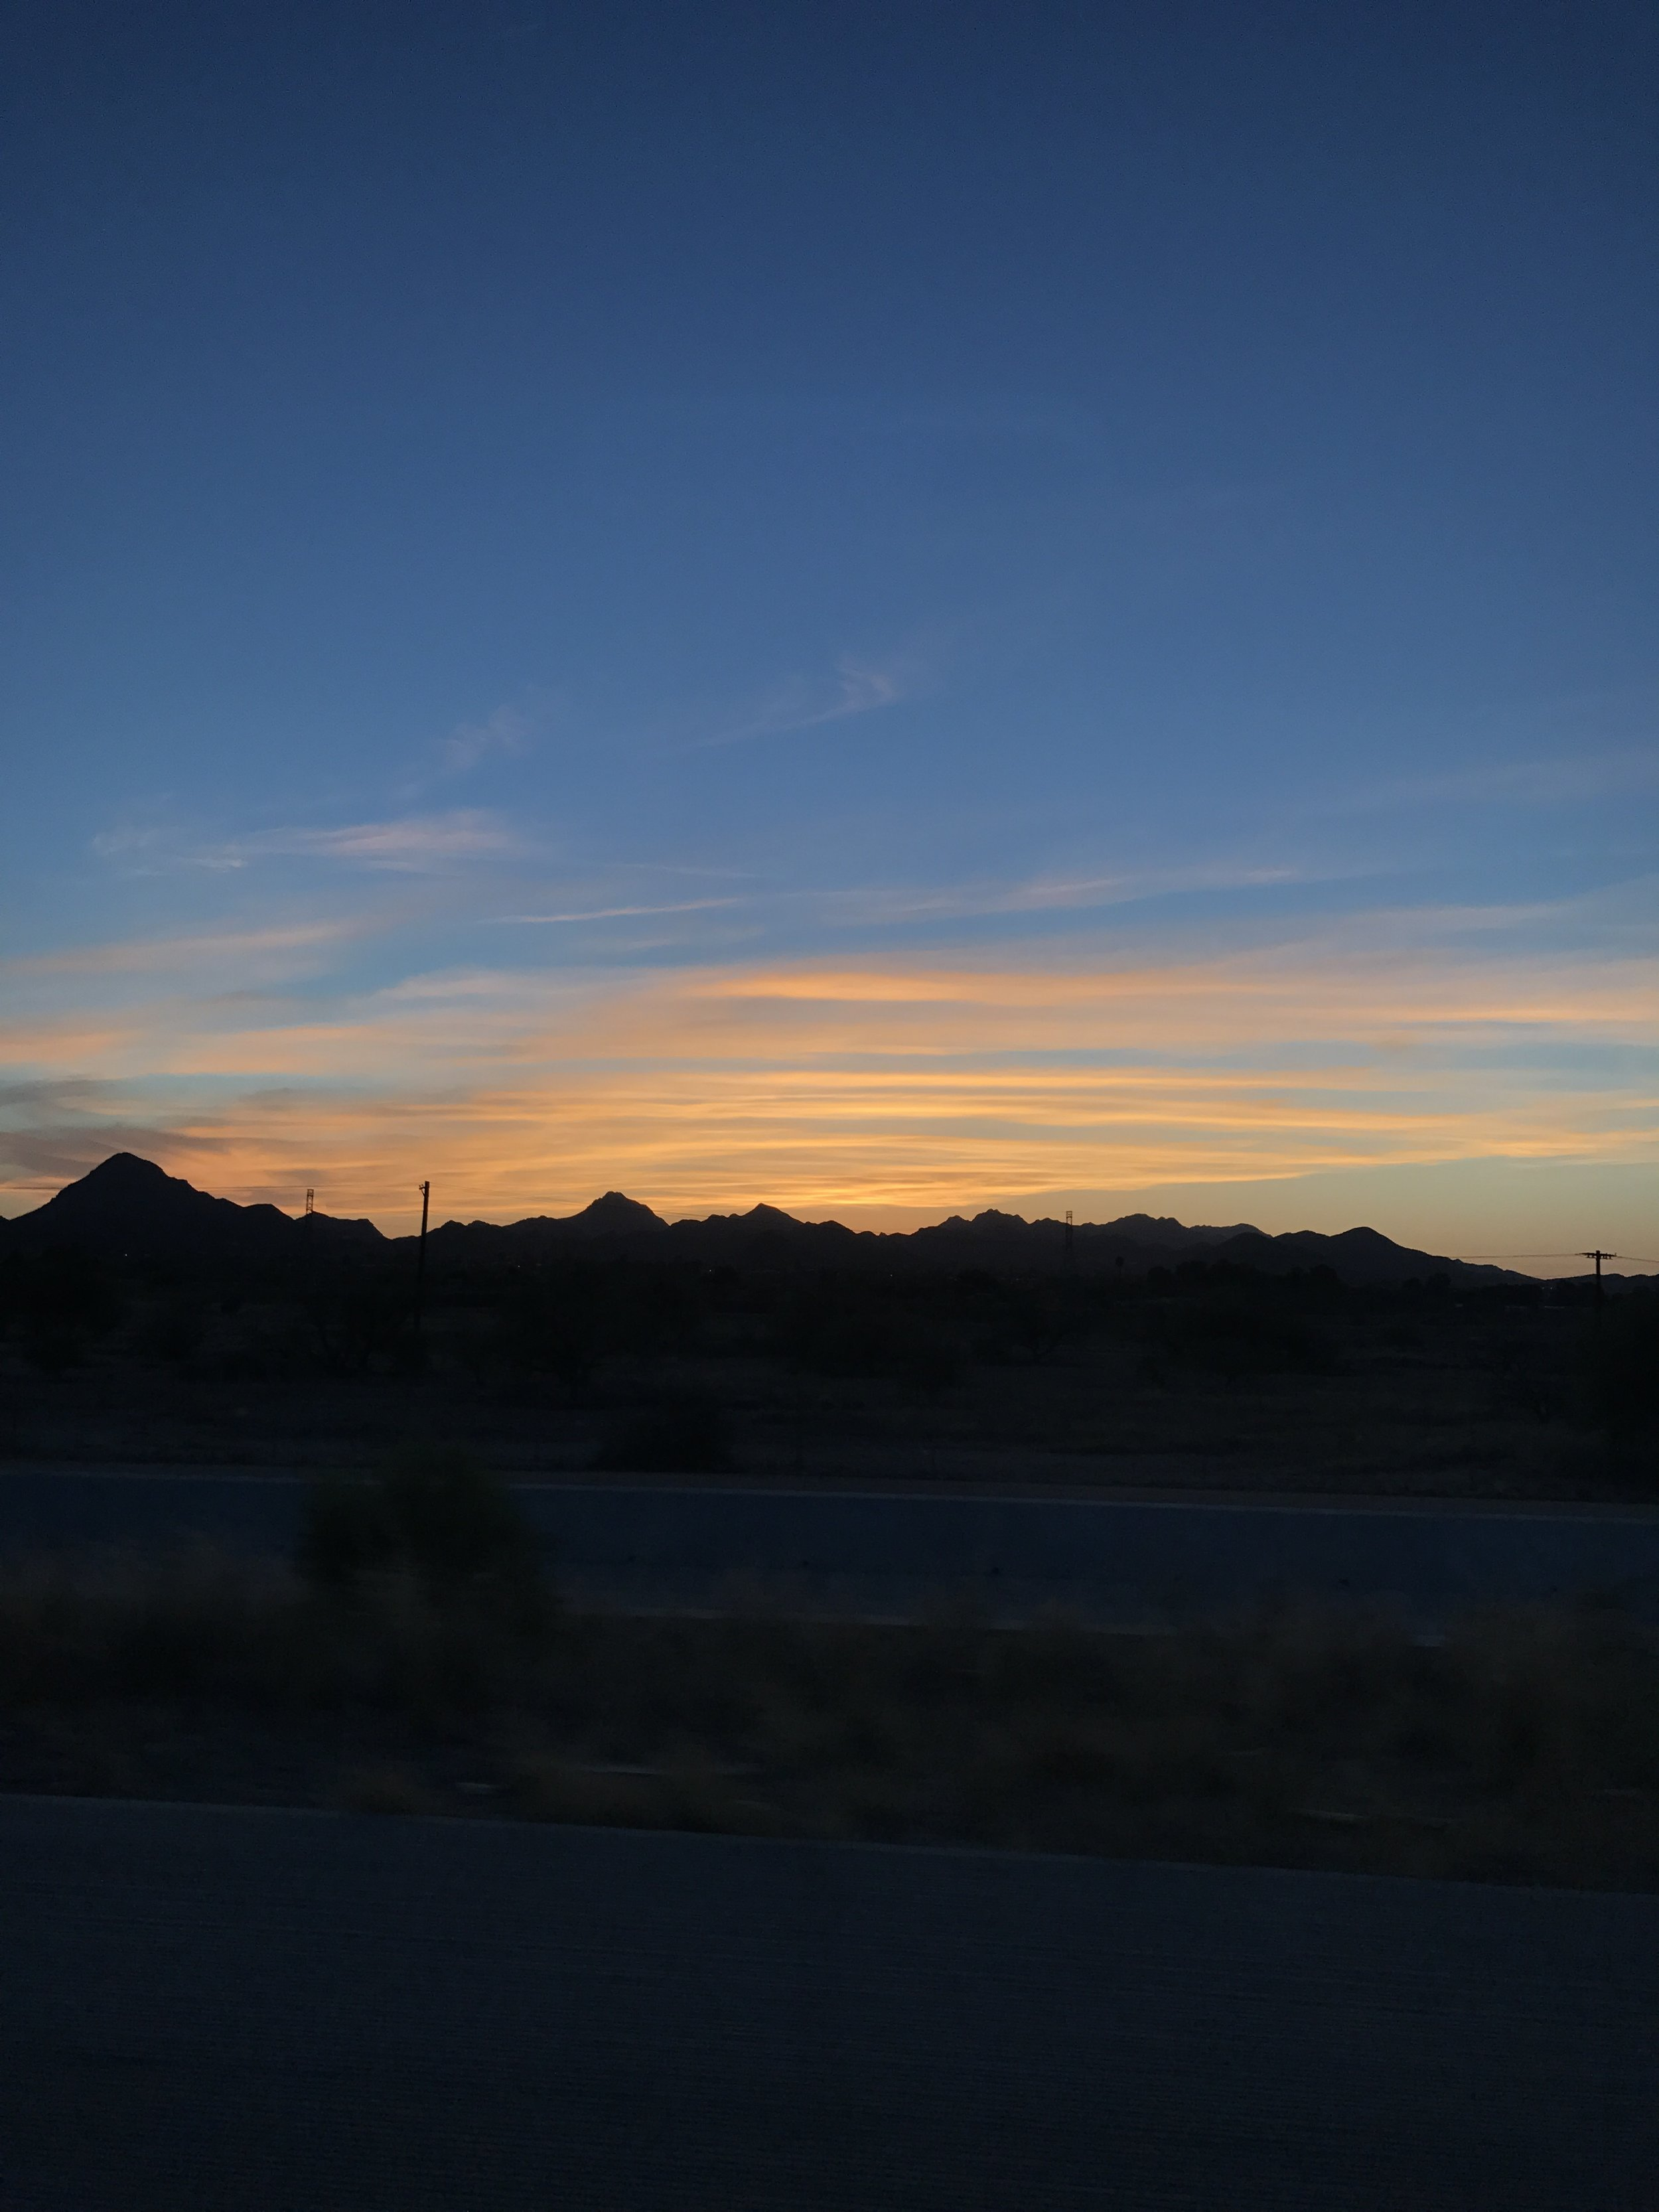 We also were lucky enough to see a glimpse of the sunset on our drive over to Grandma's.